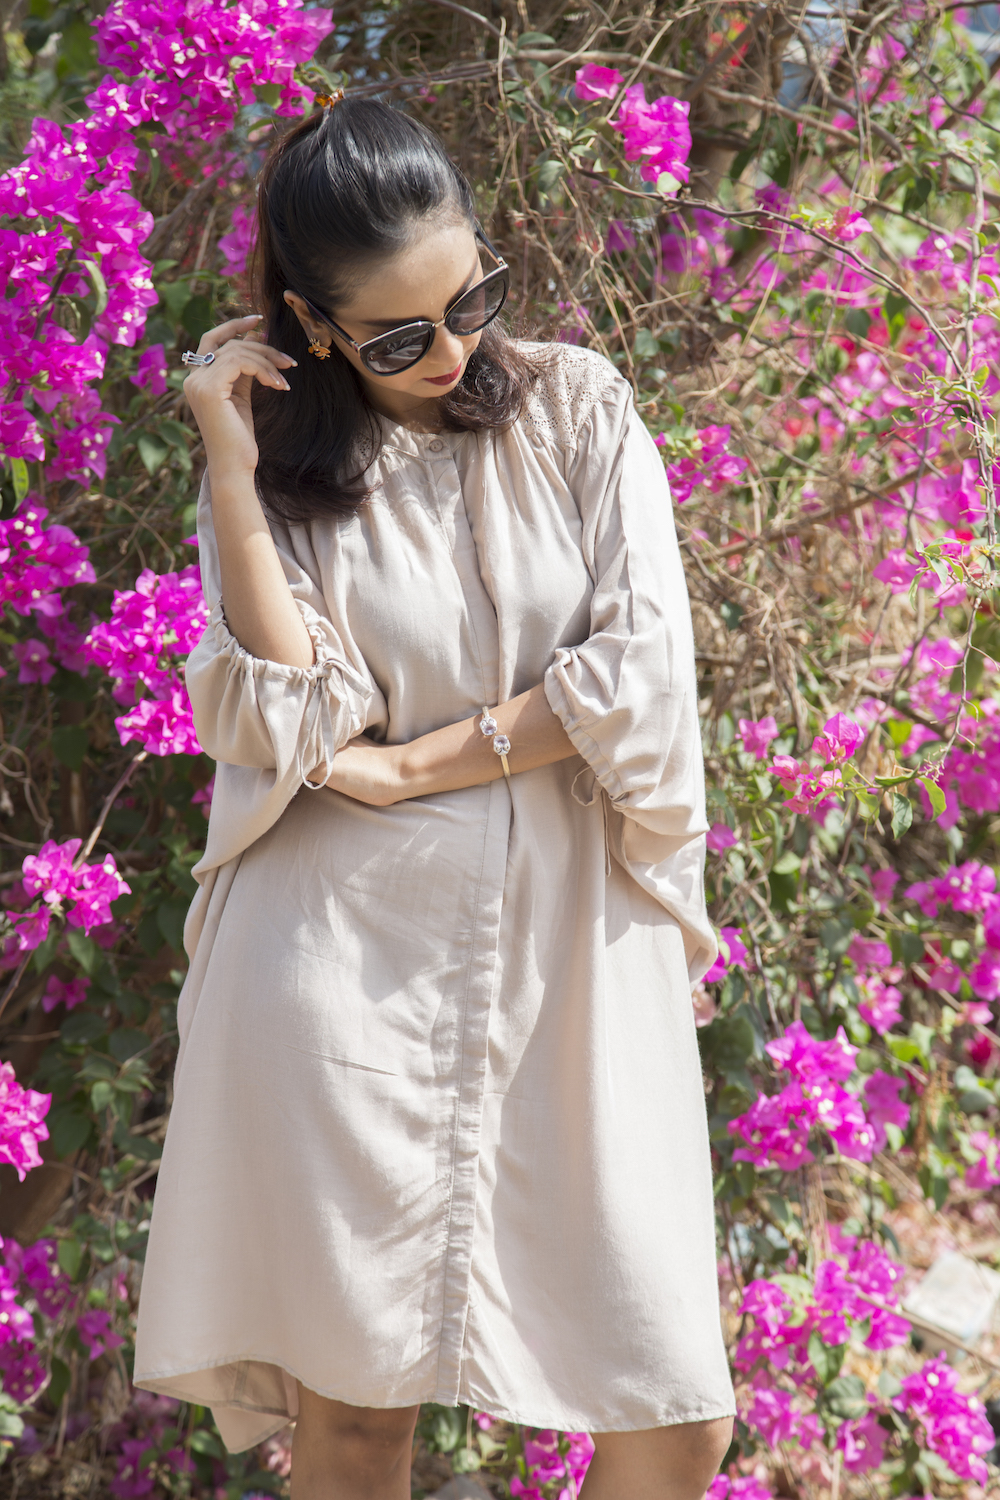 Myntra All You Need Deepika Padukone Collection Personal Style 4